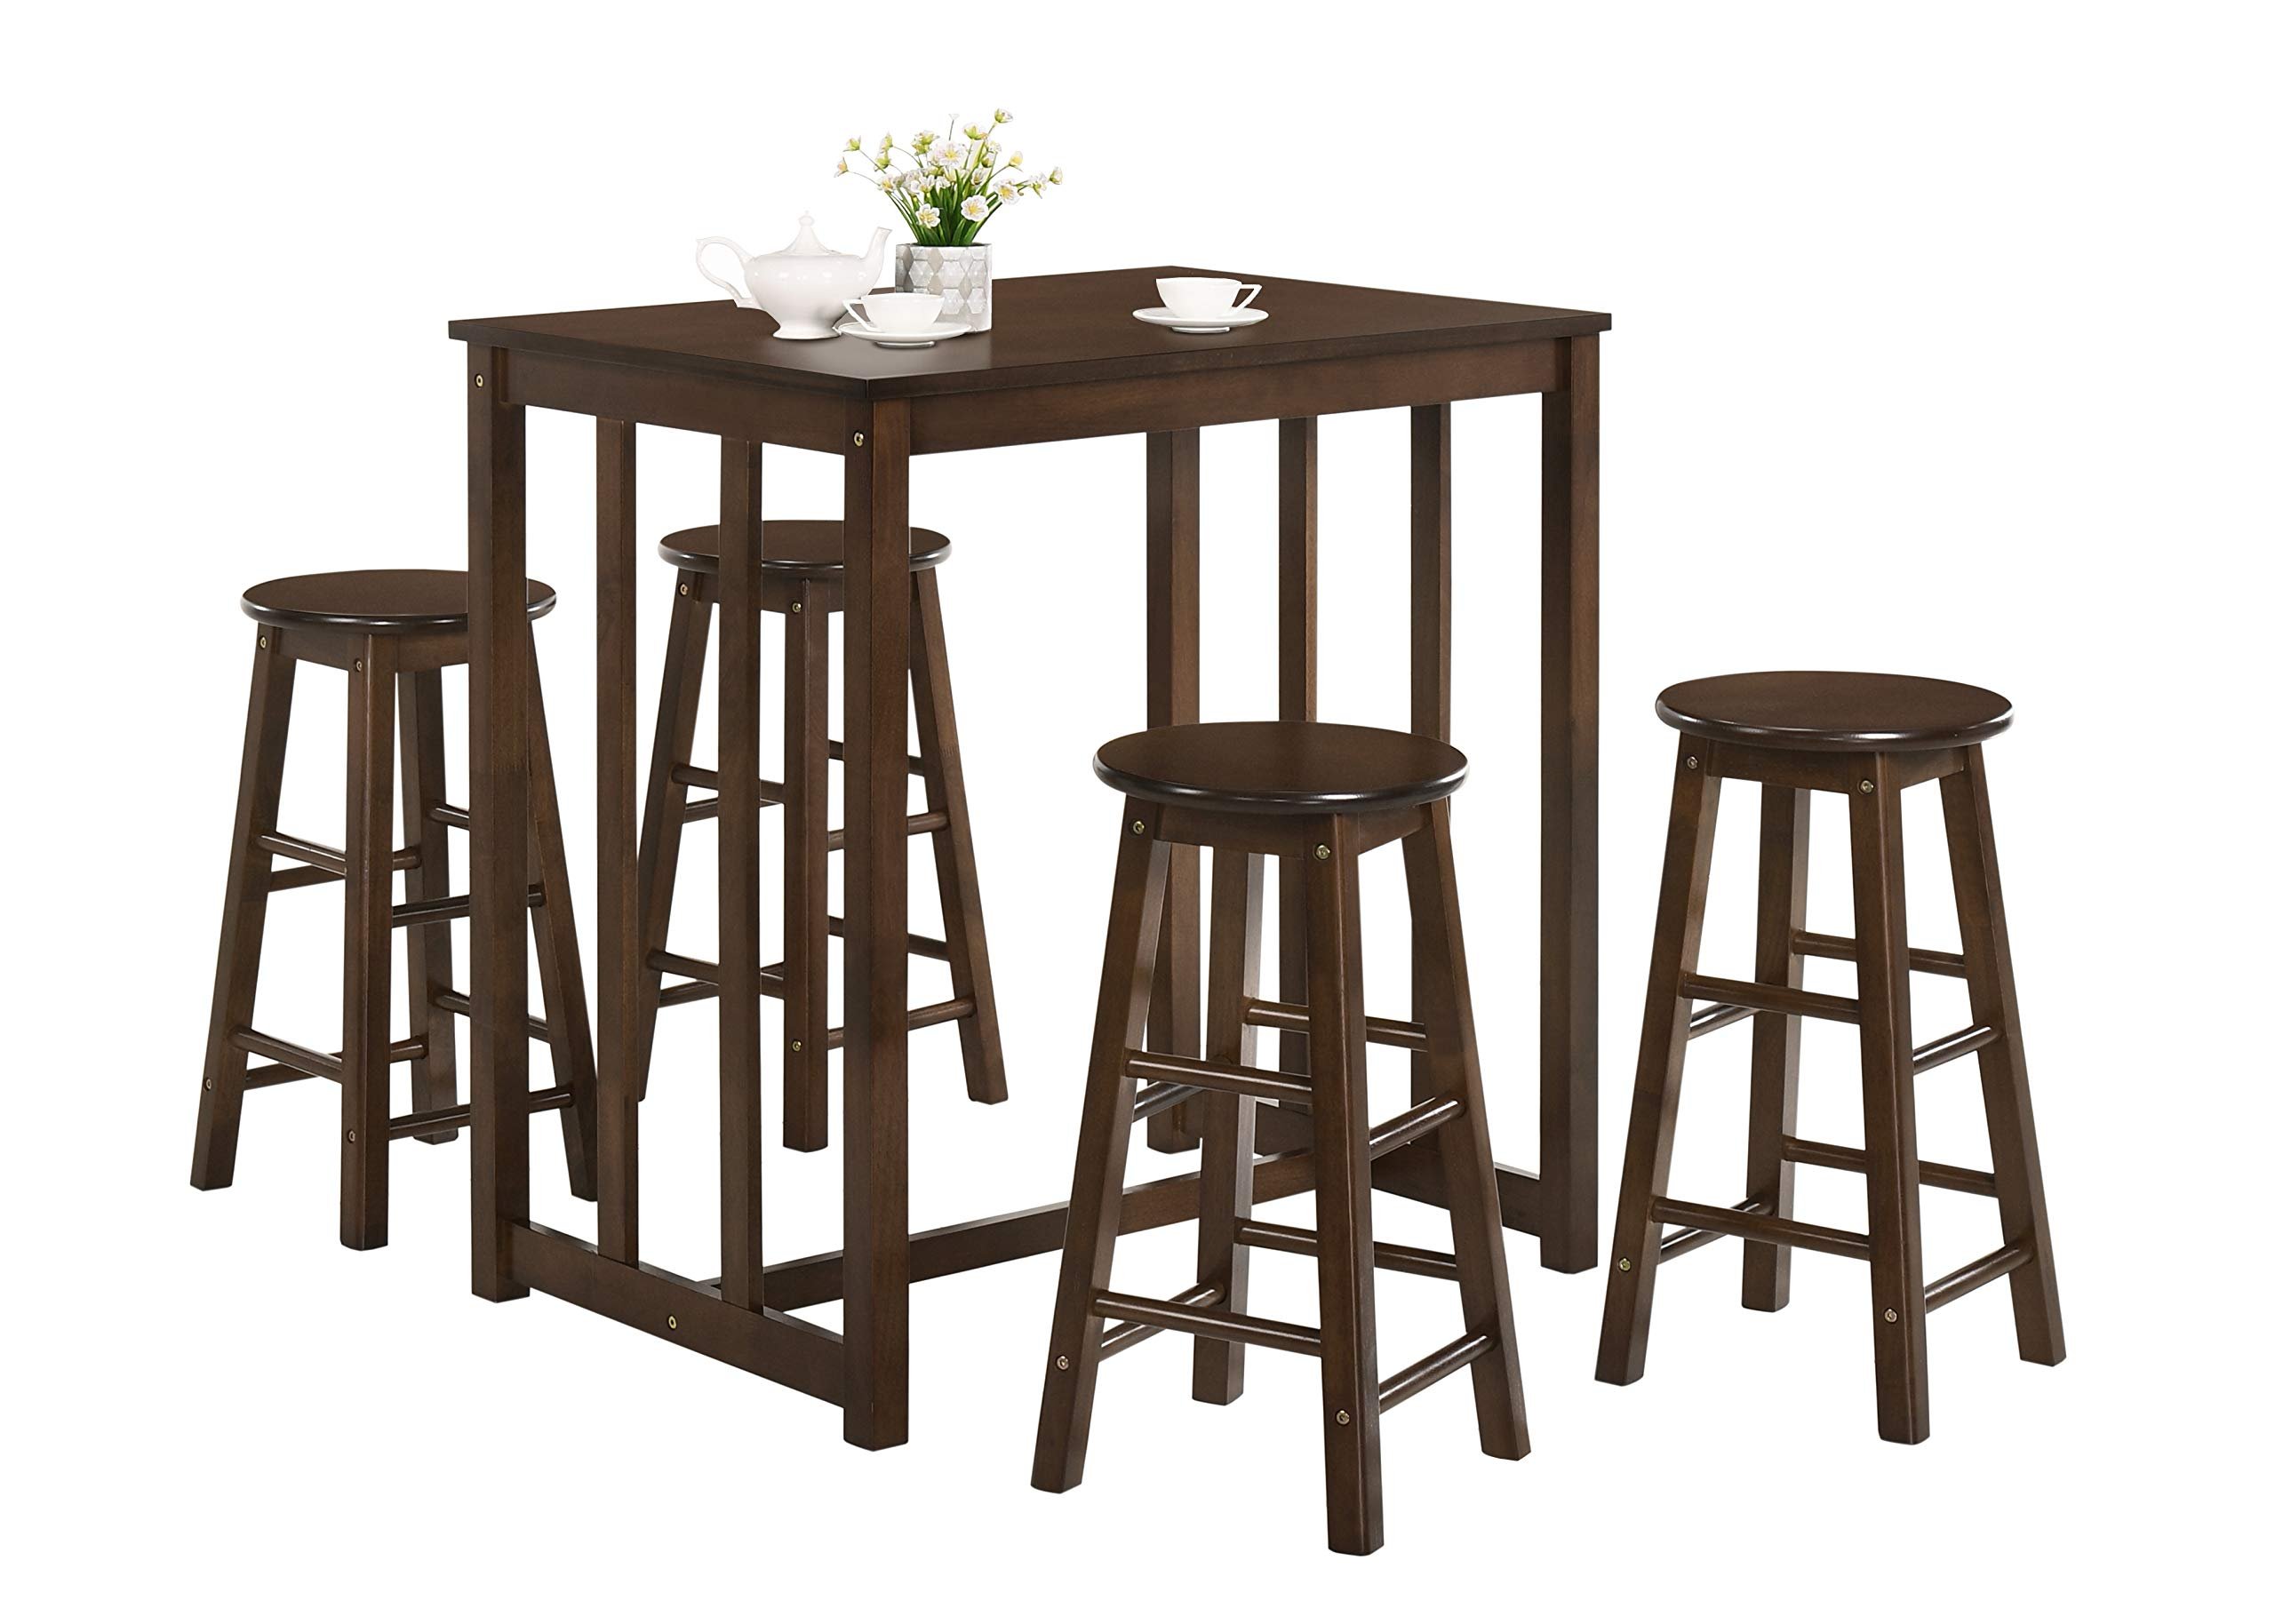 Merax 5-Piece Solid Wood Dining Table Set Kitchen High Pub Table Set with 4 Bar Stools (Espresso) by Merax